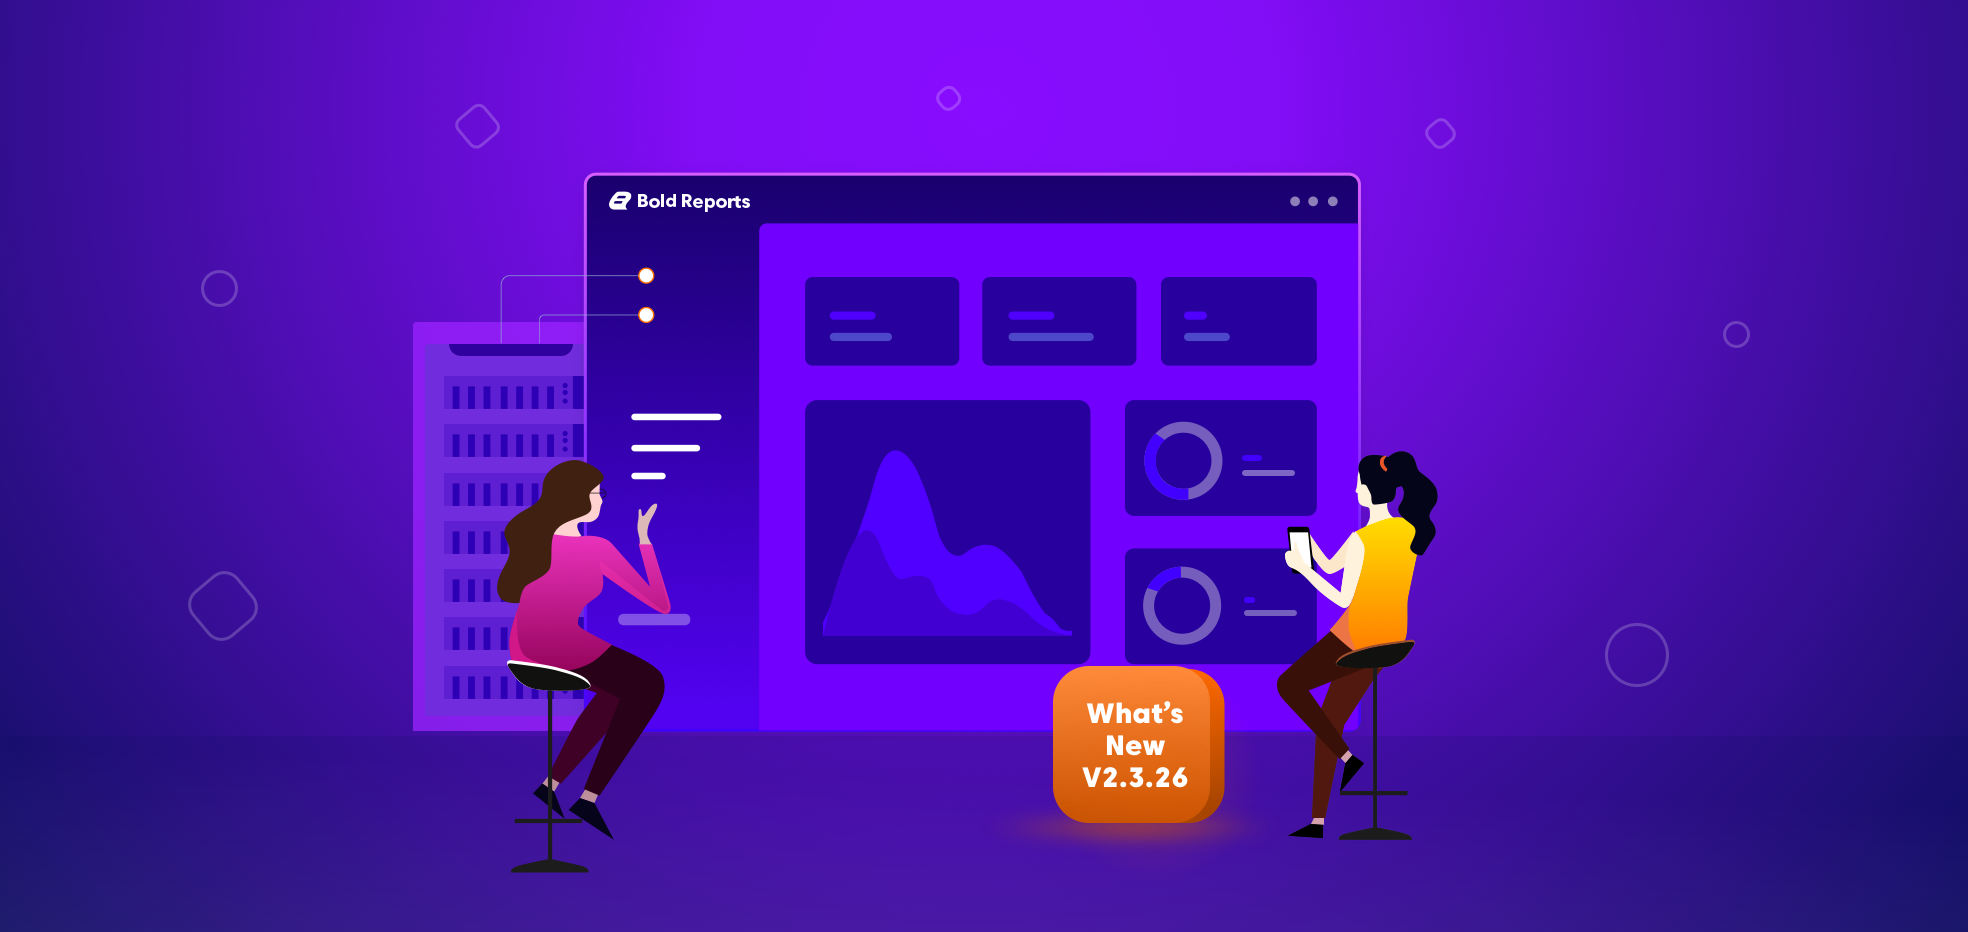 What's New in 2020 Bold Reports v2.3.26 Release